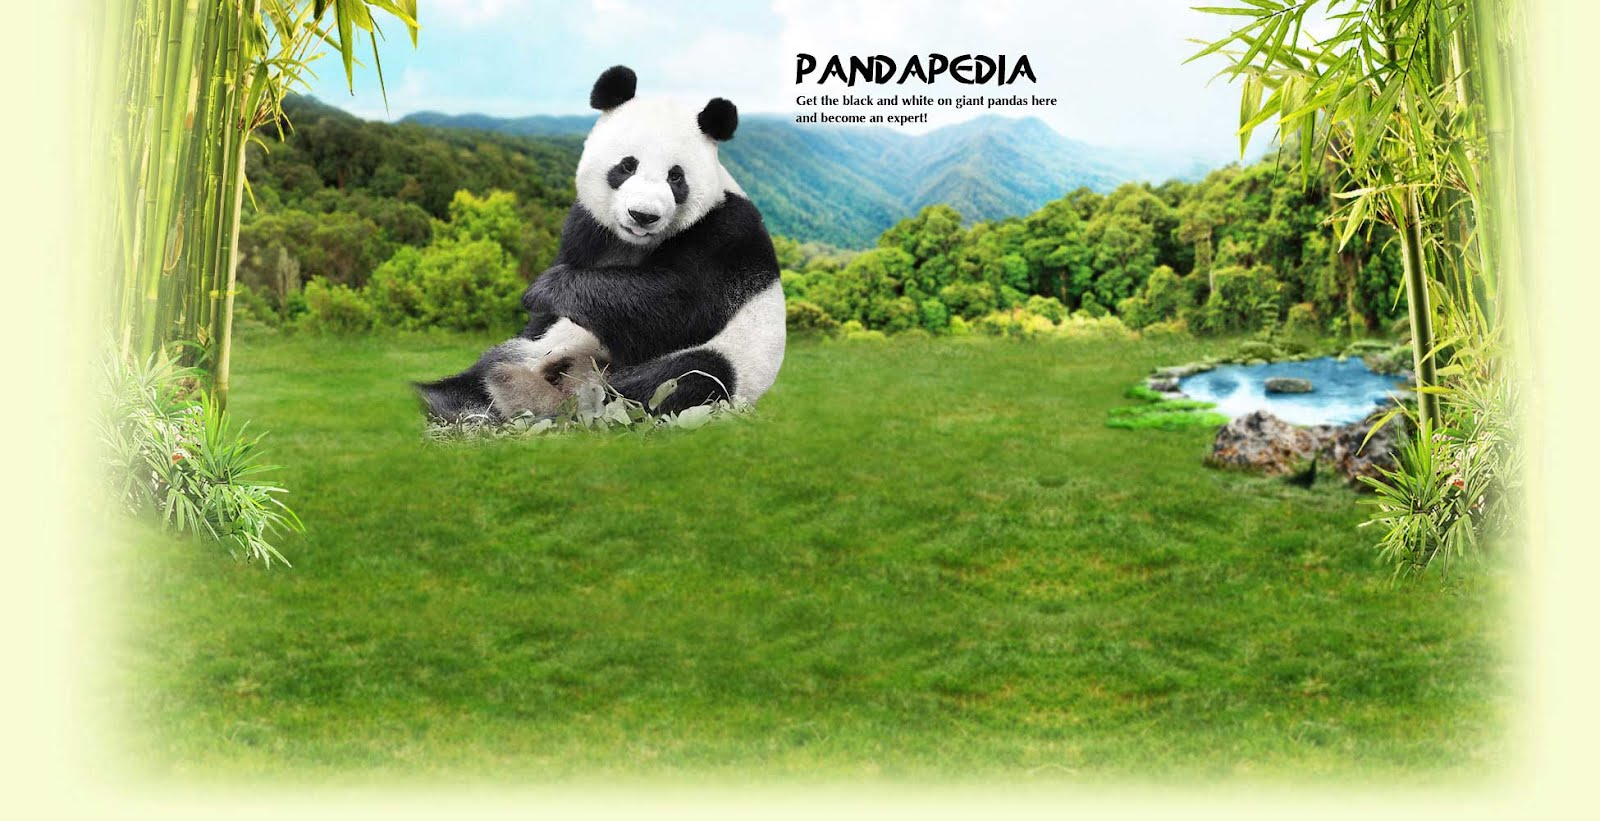 Pandapedia - Get the black and white on giant pandas and become an expert!